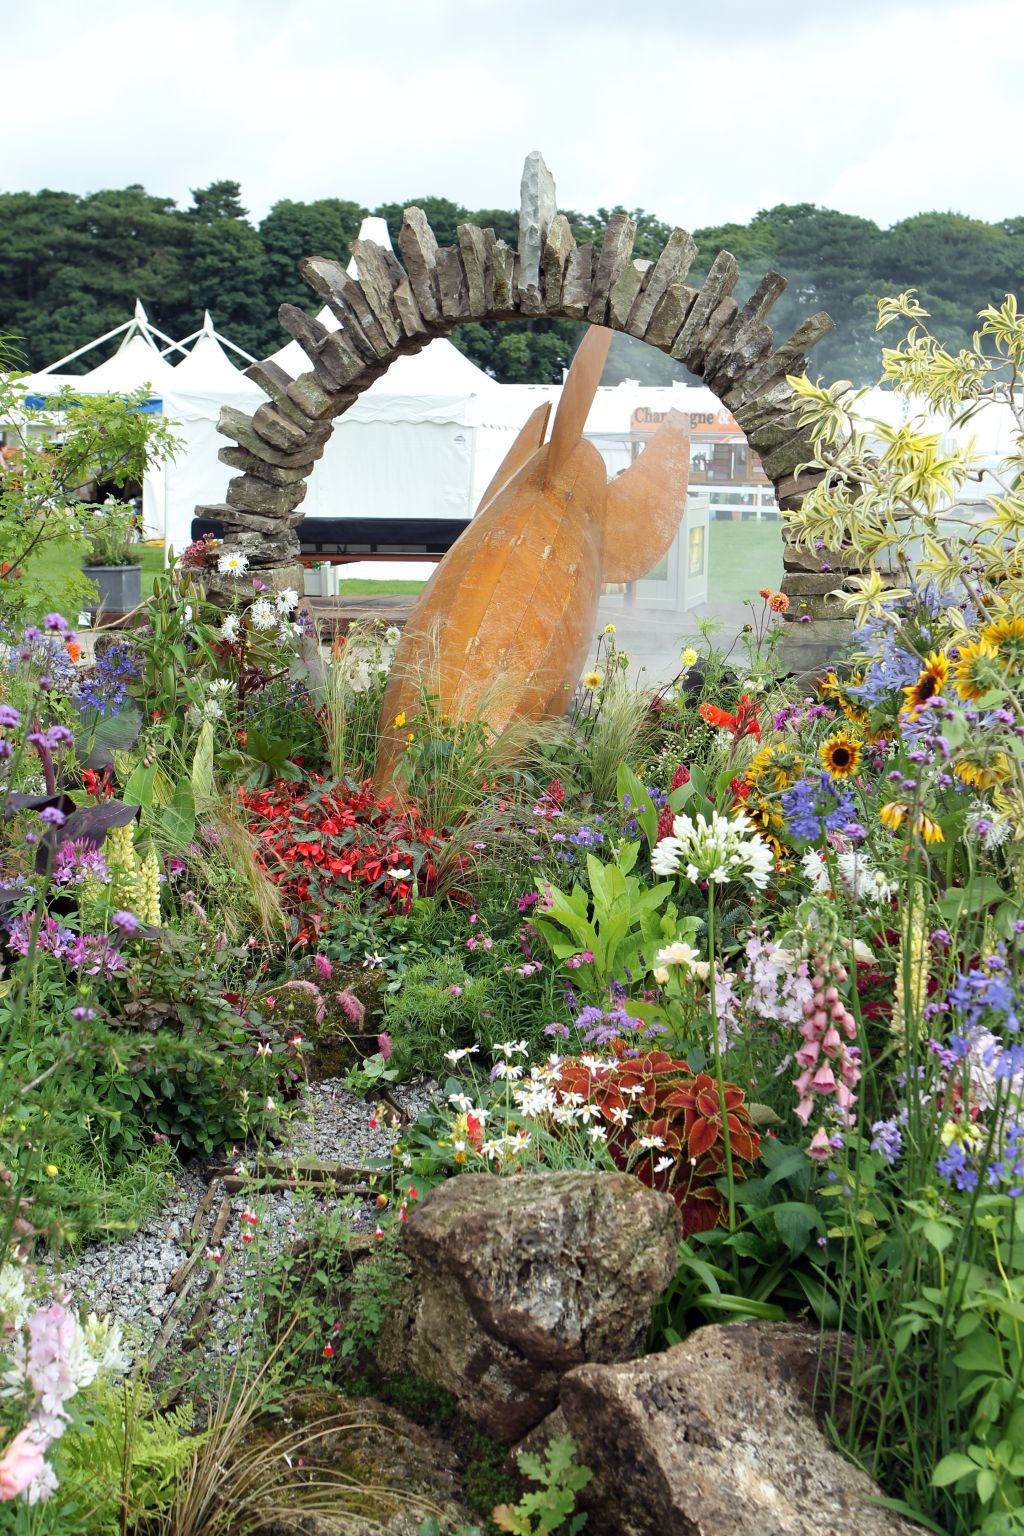 Calatorie interplanetara, proiect de Tatton Park Garden la RHS Flower Show Tatton Park, Londra. Foto Andy Paradise